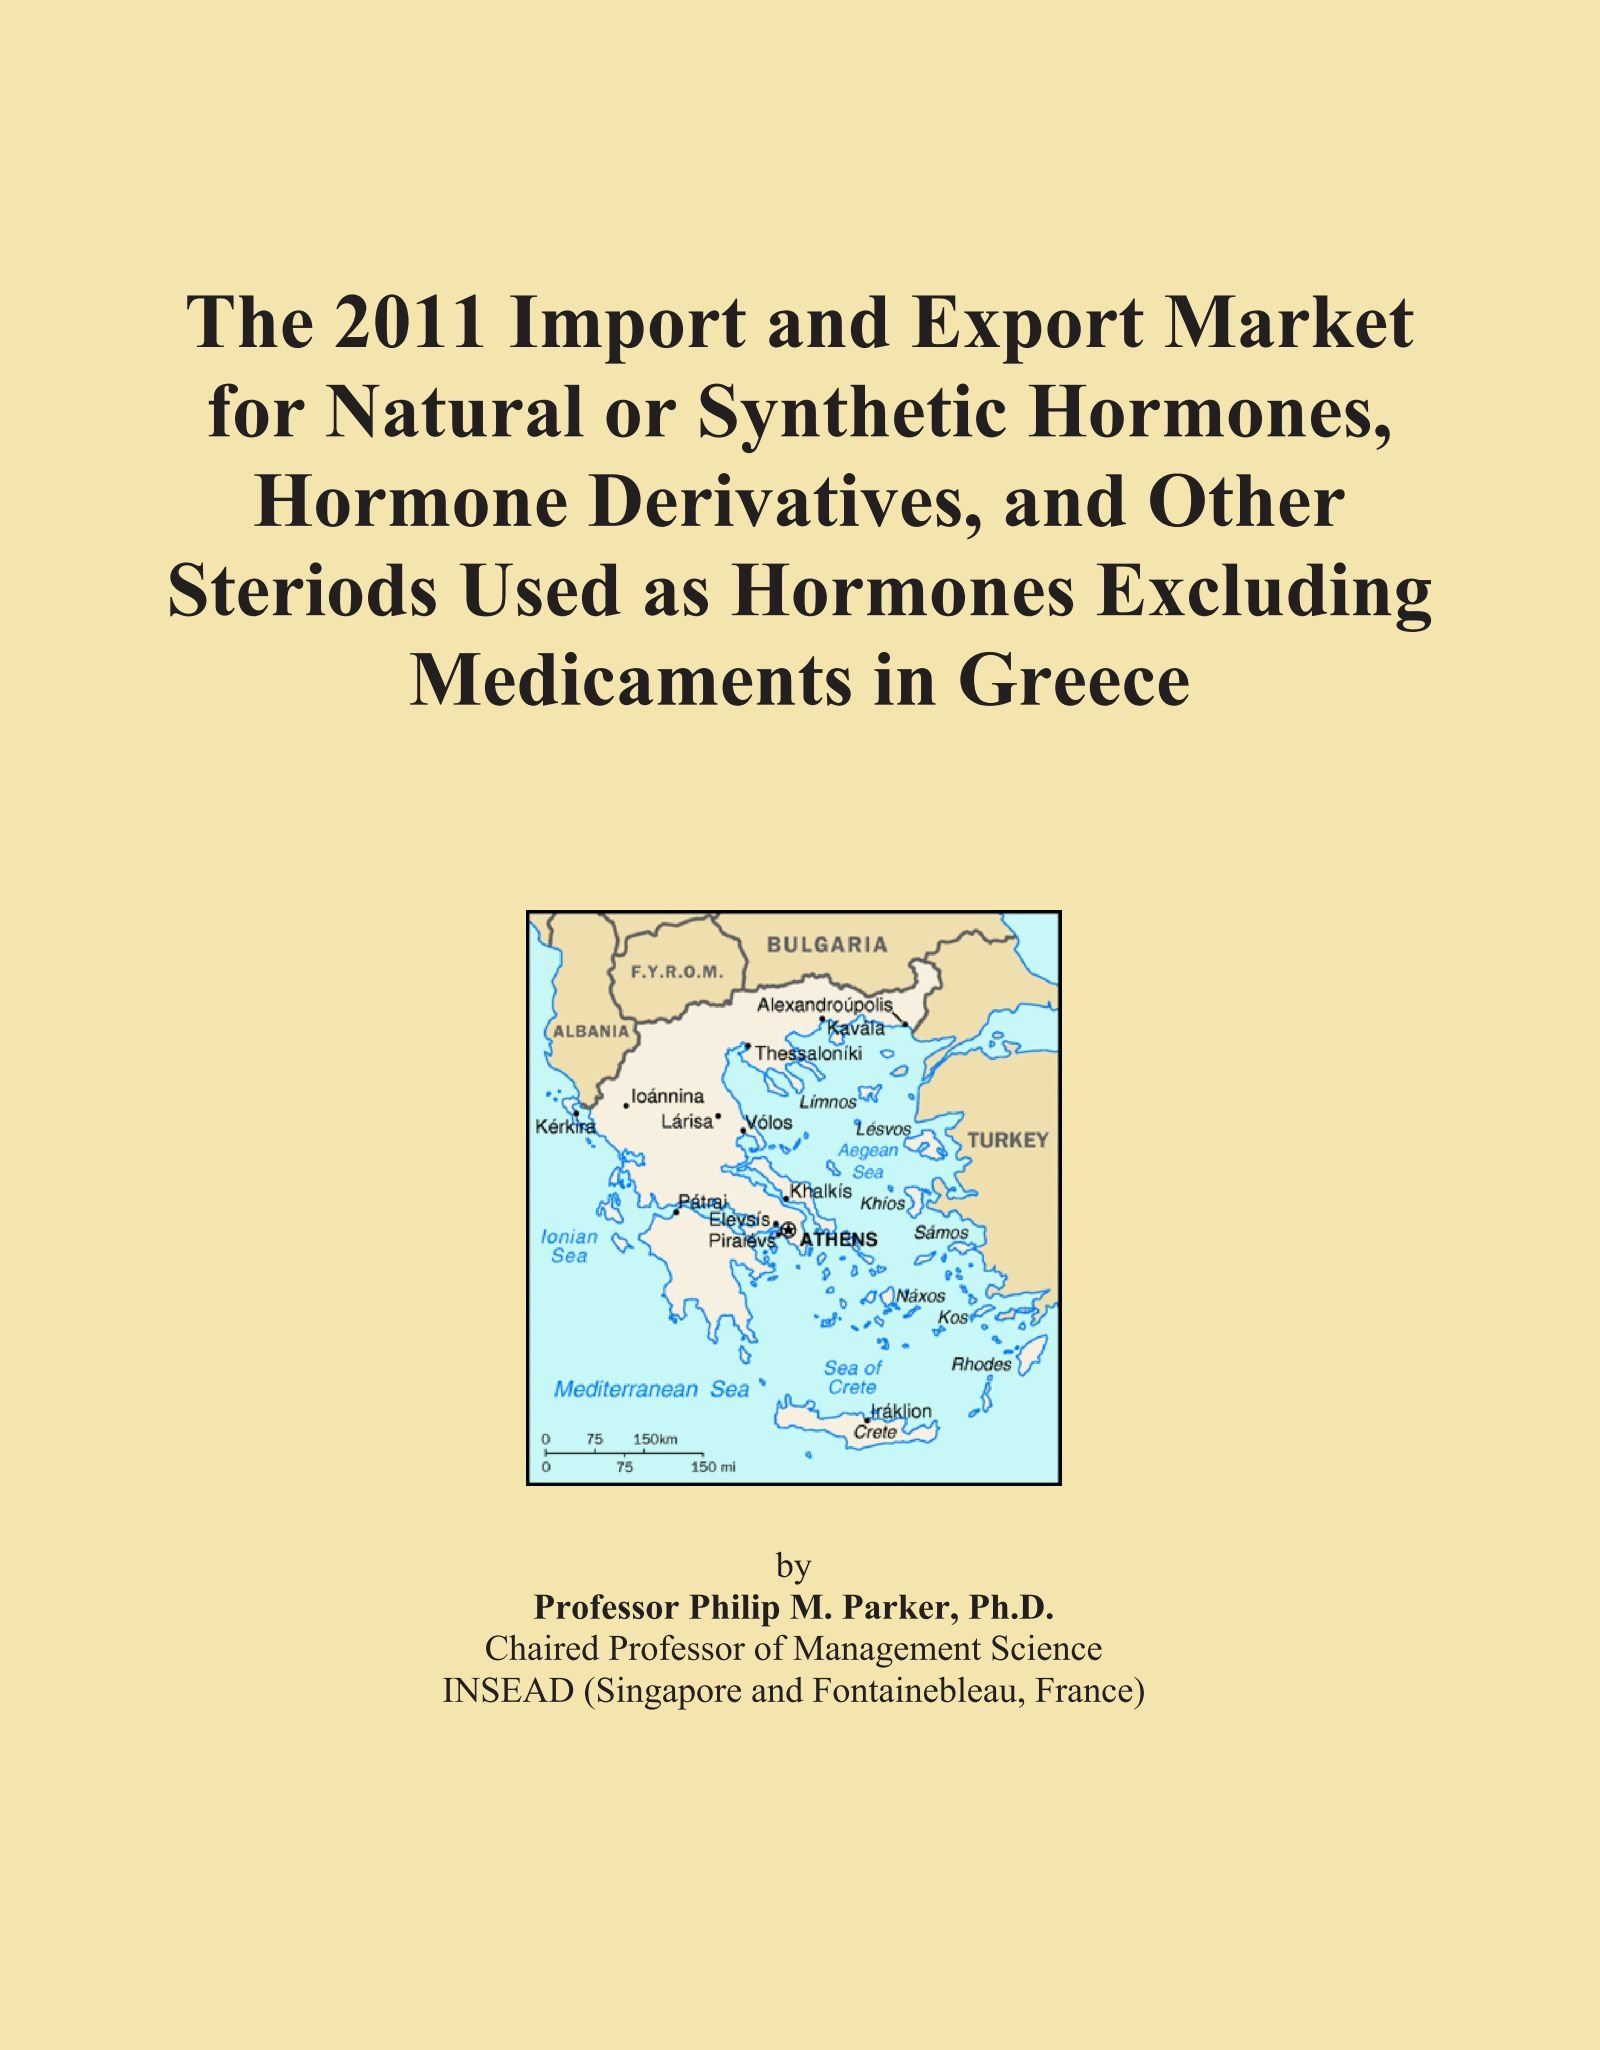 Download The 2011 Import and Export Market for Natural or Synthetic Hormones, Hormone Derivatives, and Other Steriods Used as Hormones Excluding Medicaments in Greece PDF